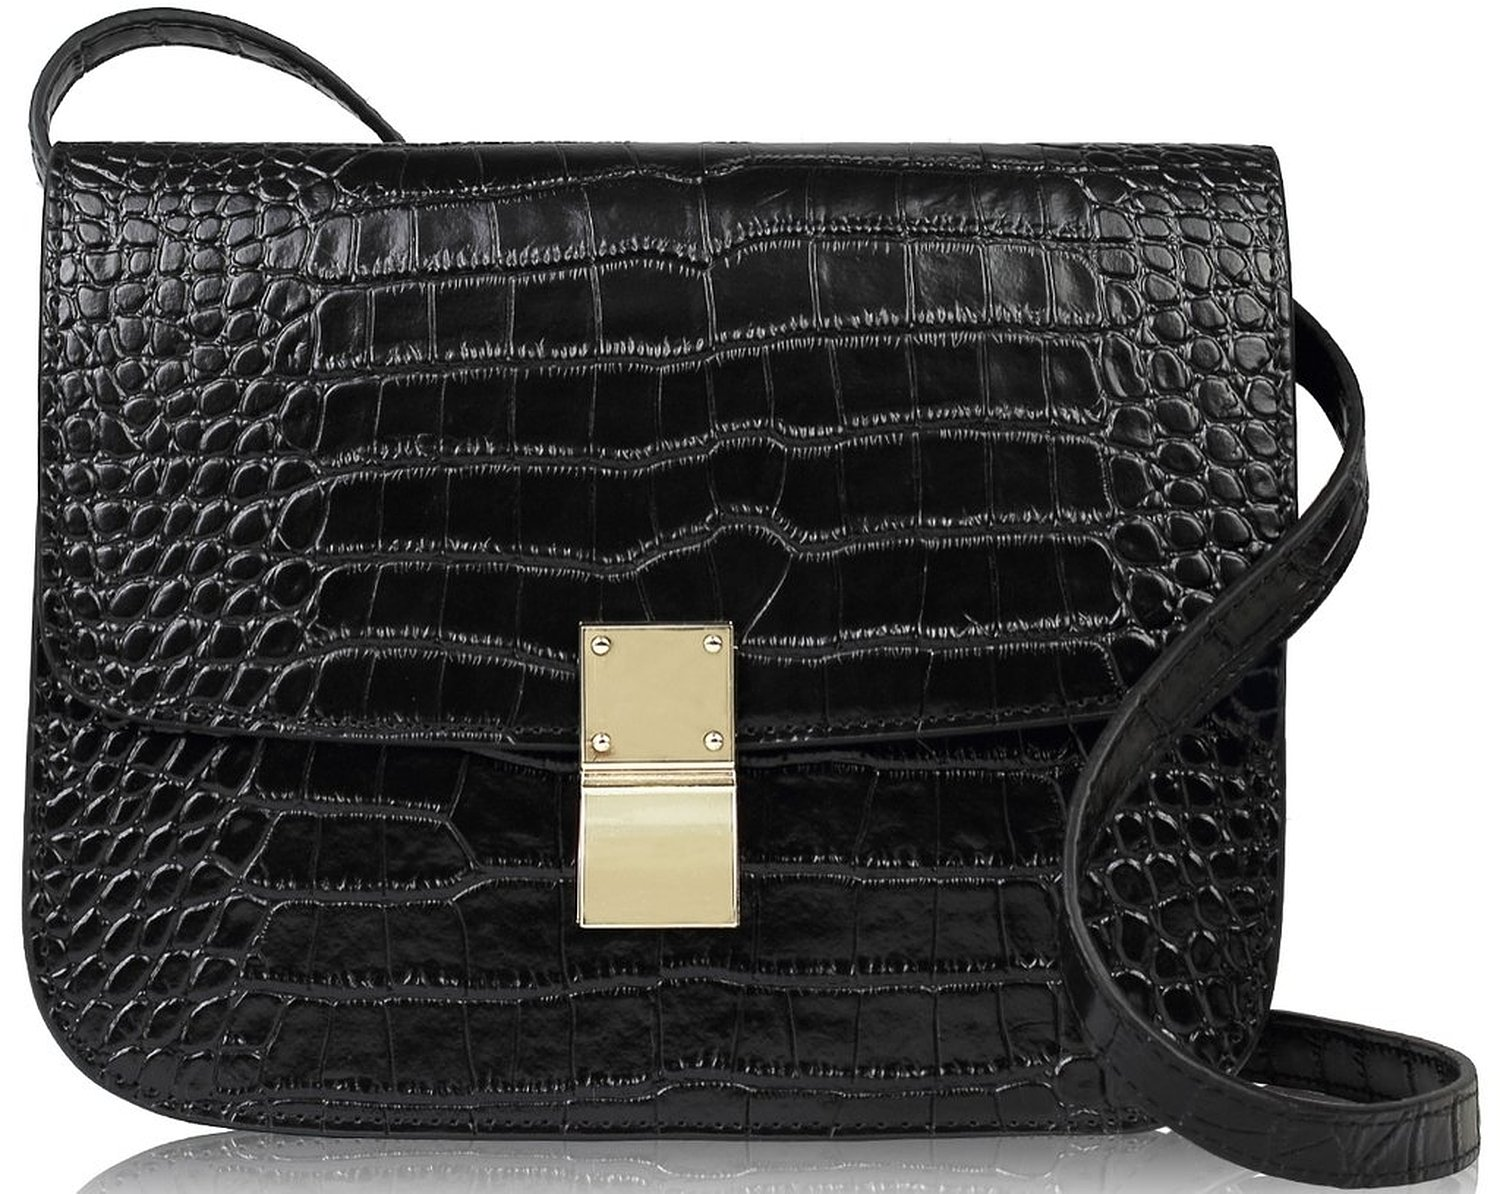 6ce9f33c05b9 Lush Leather Boxy Shoulder Croc Black Bag  Handbags  Amazon.com